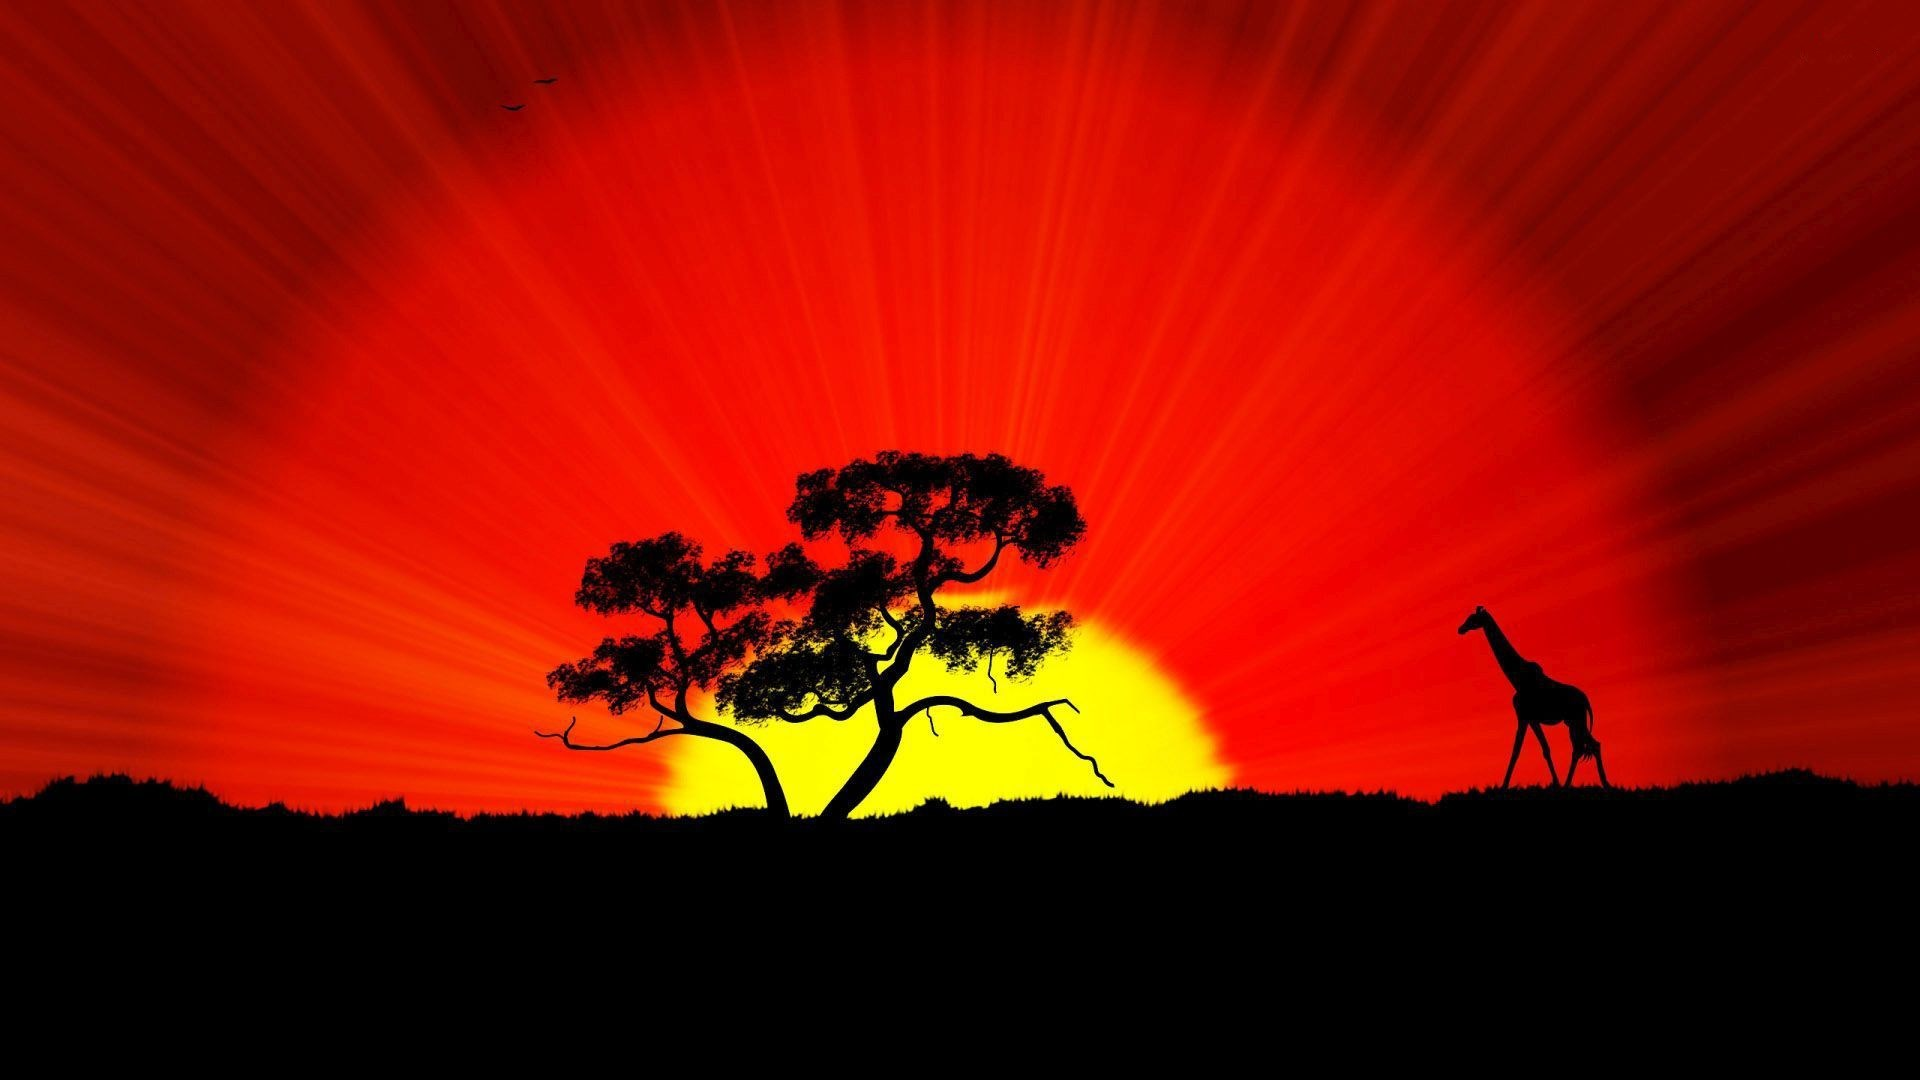 africa-at-sunset-1920x1080-wallpaper-wp3402196